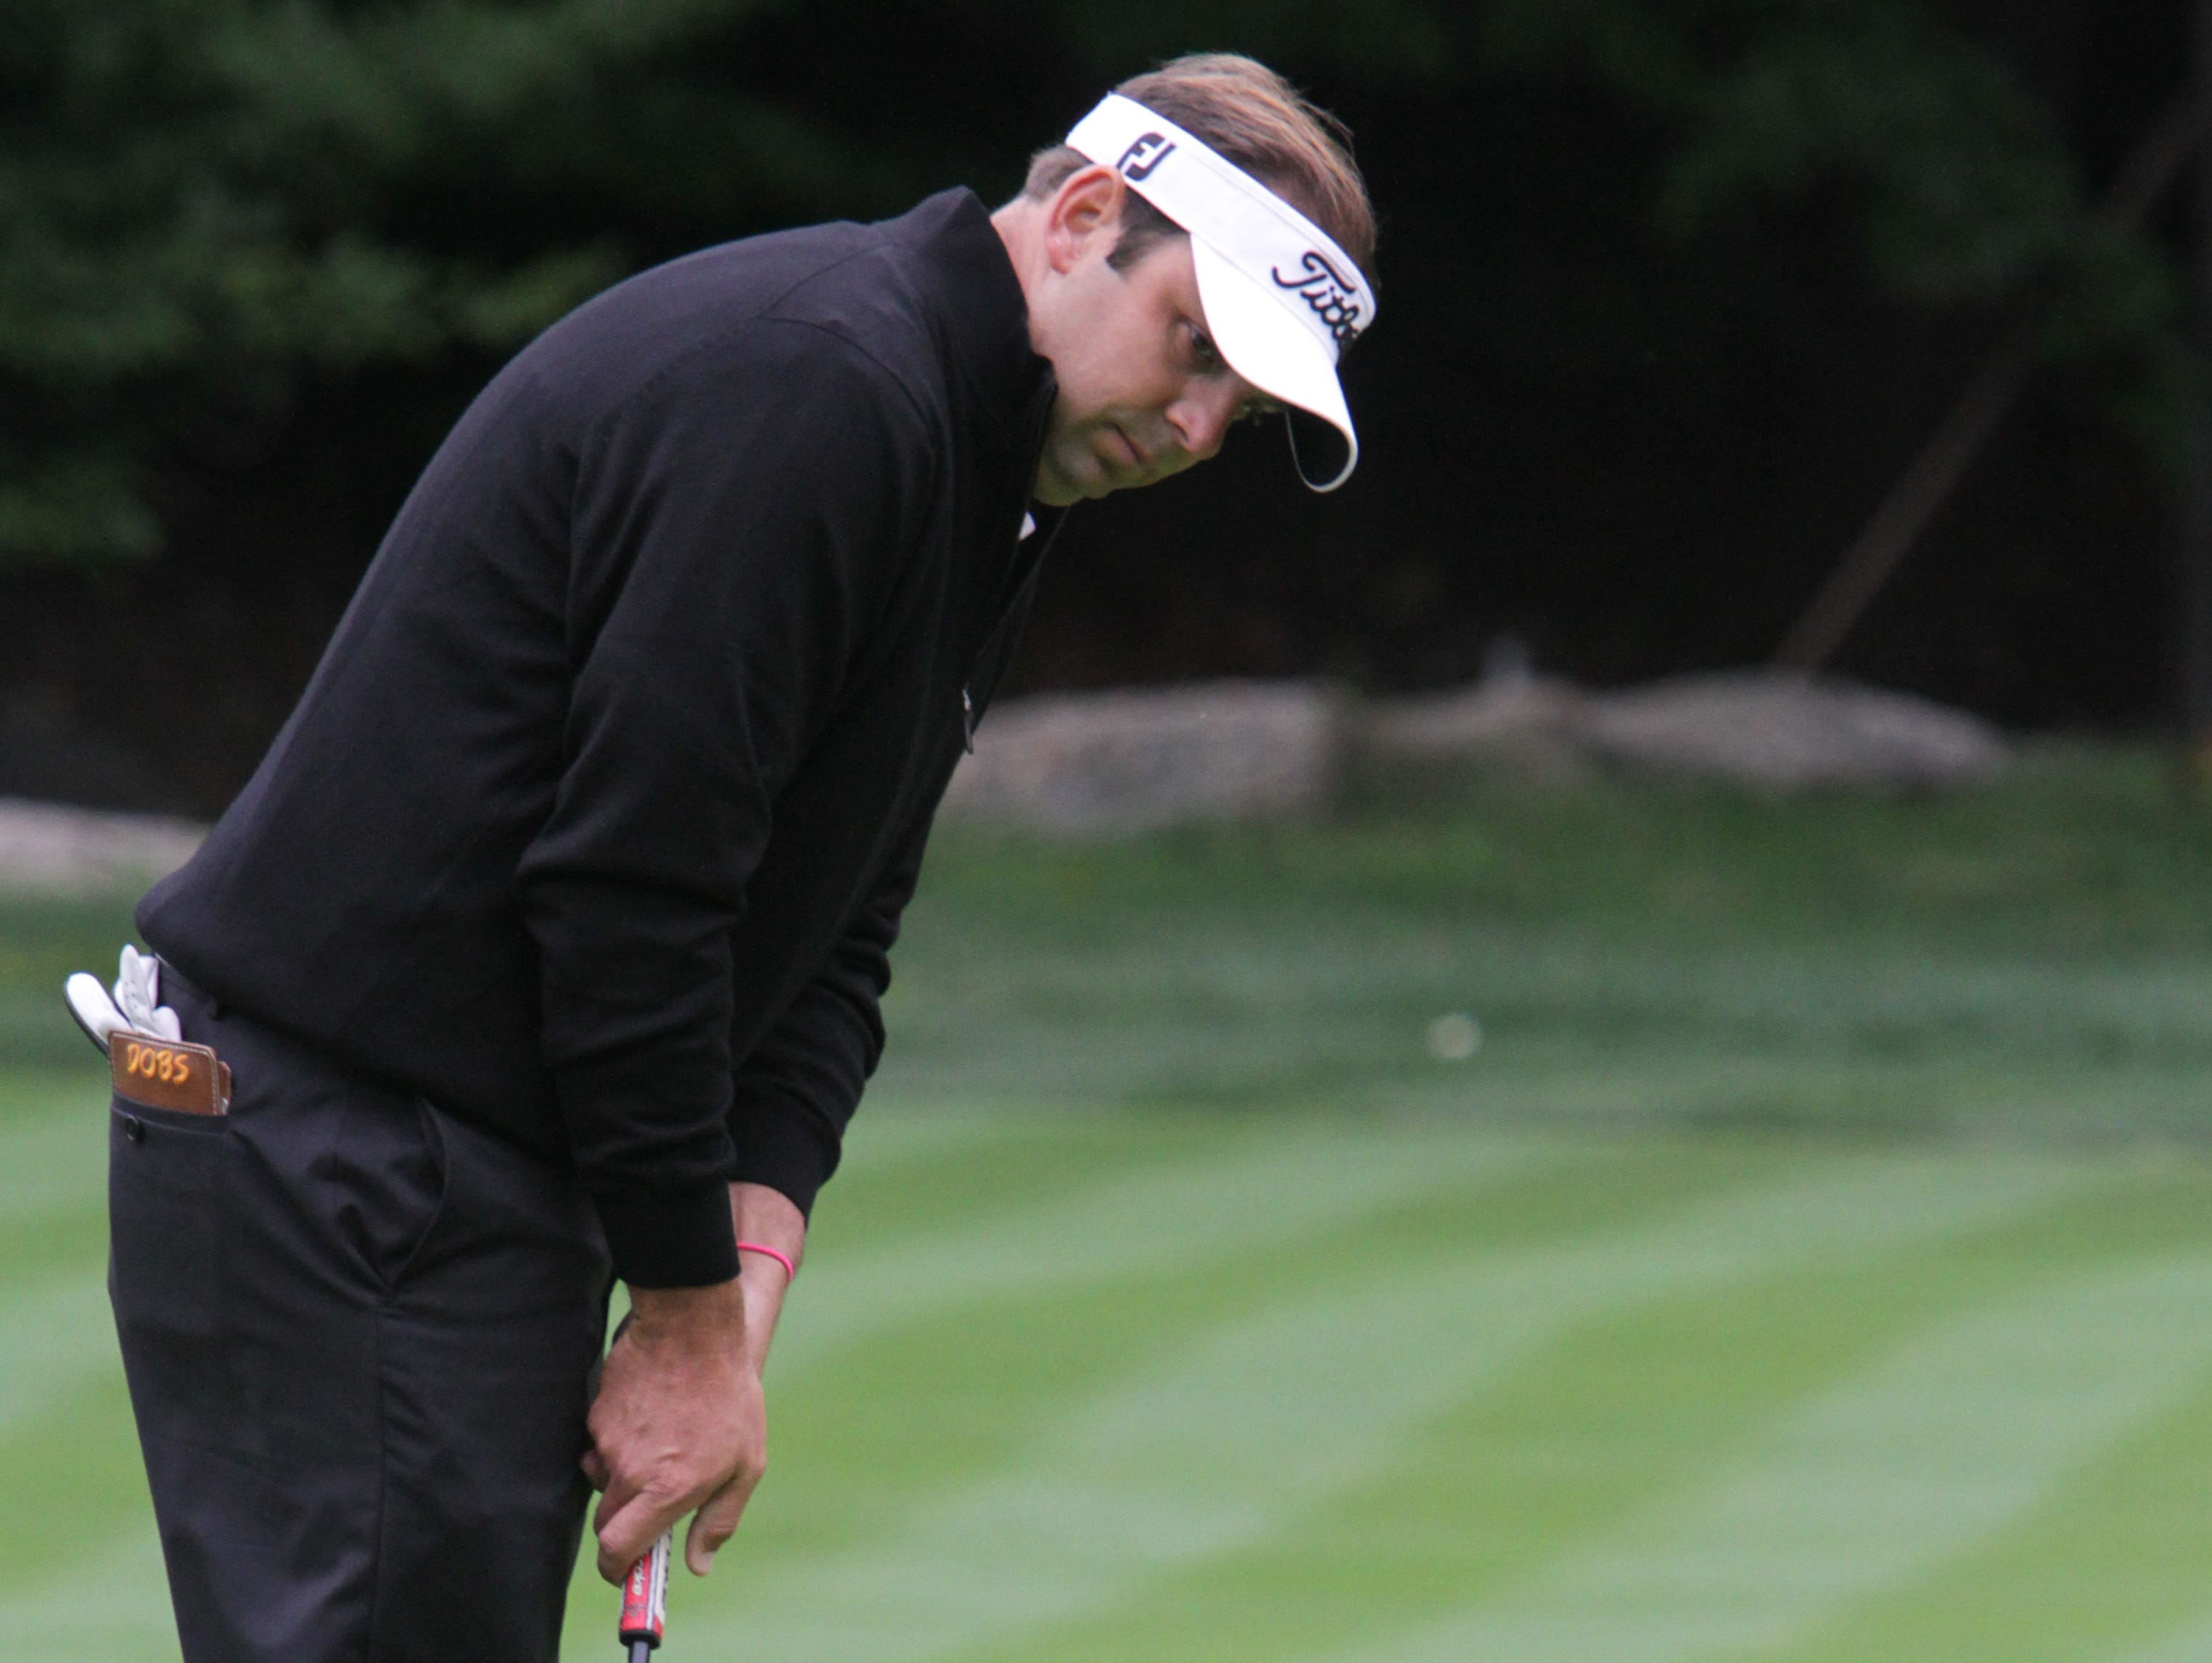 Matt Dobyns watches his missed putt on the 17th during regular play in the final round of the Met PGA Championship at Fenway Golf Club Oct. 1, 2015. Tyler Jaramillo forced a sudden death play-off against Dobyns that Dobyns won.